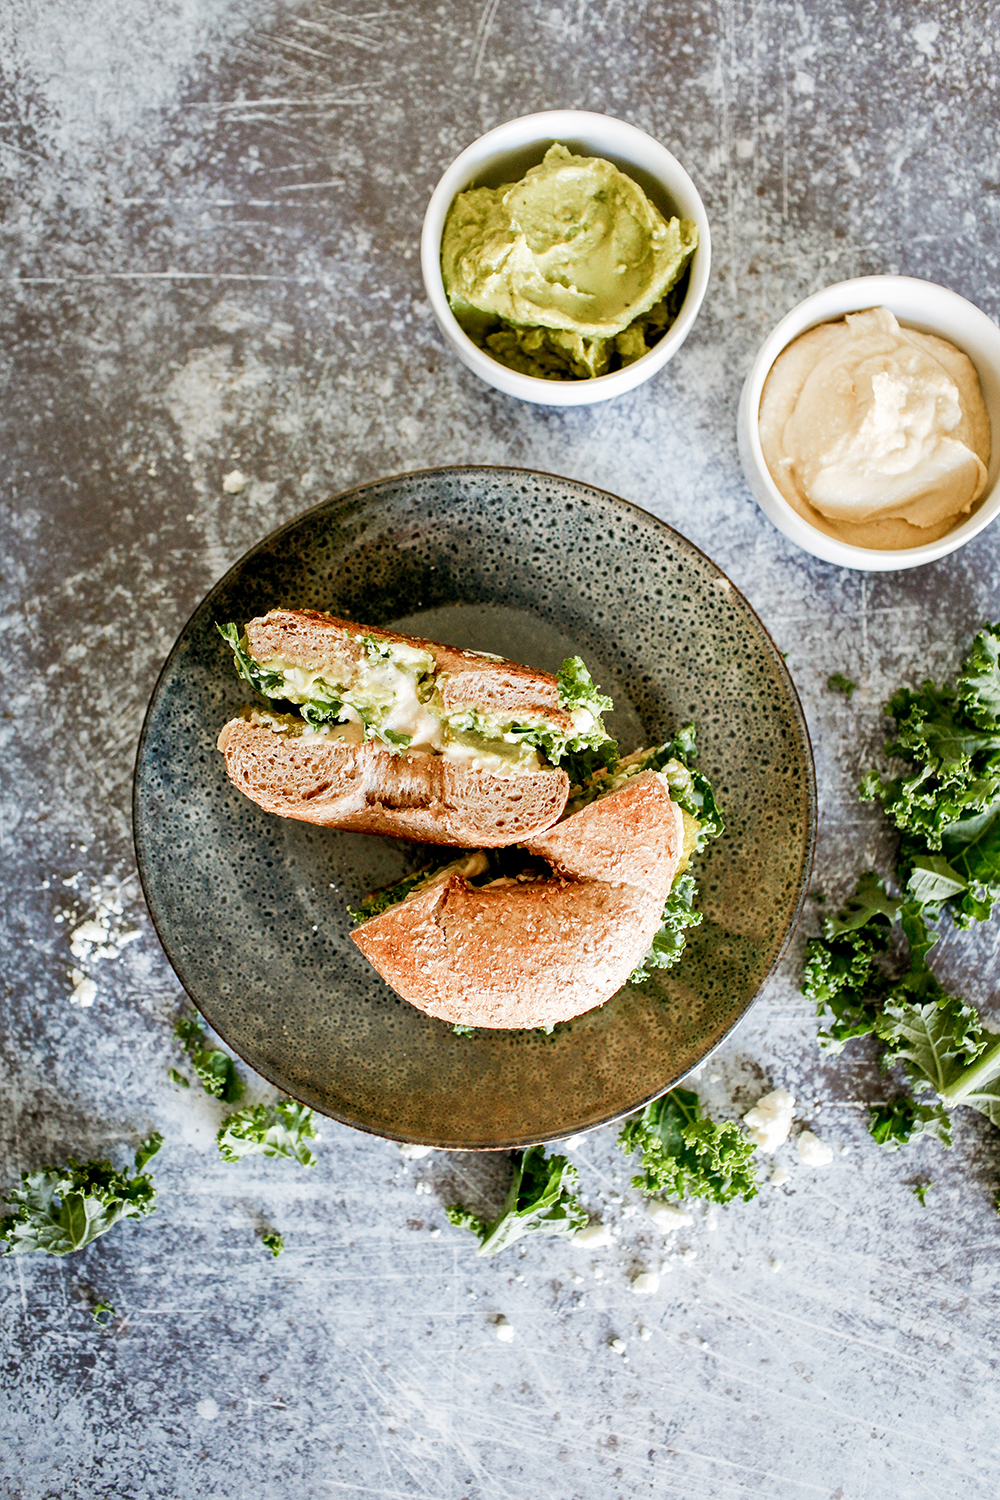 Houmous and guacamole bagel with kale